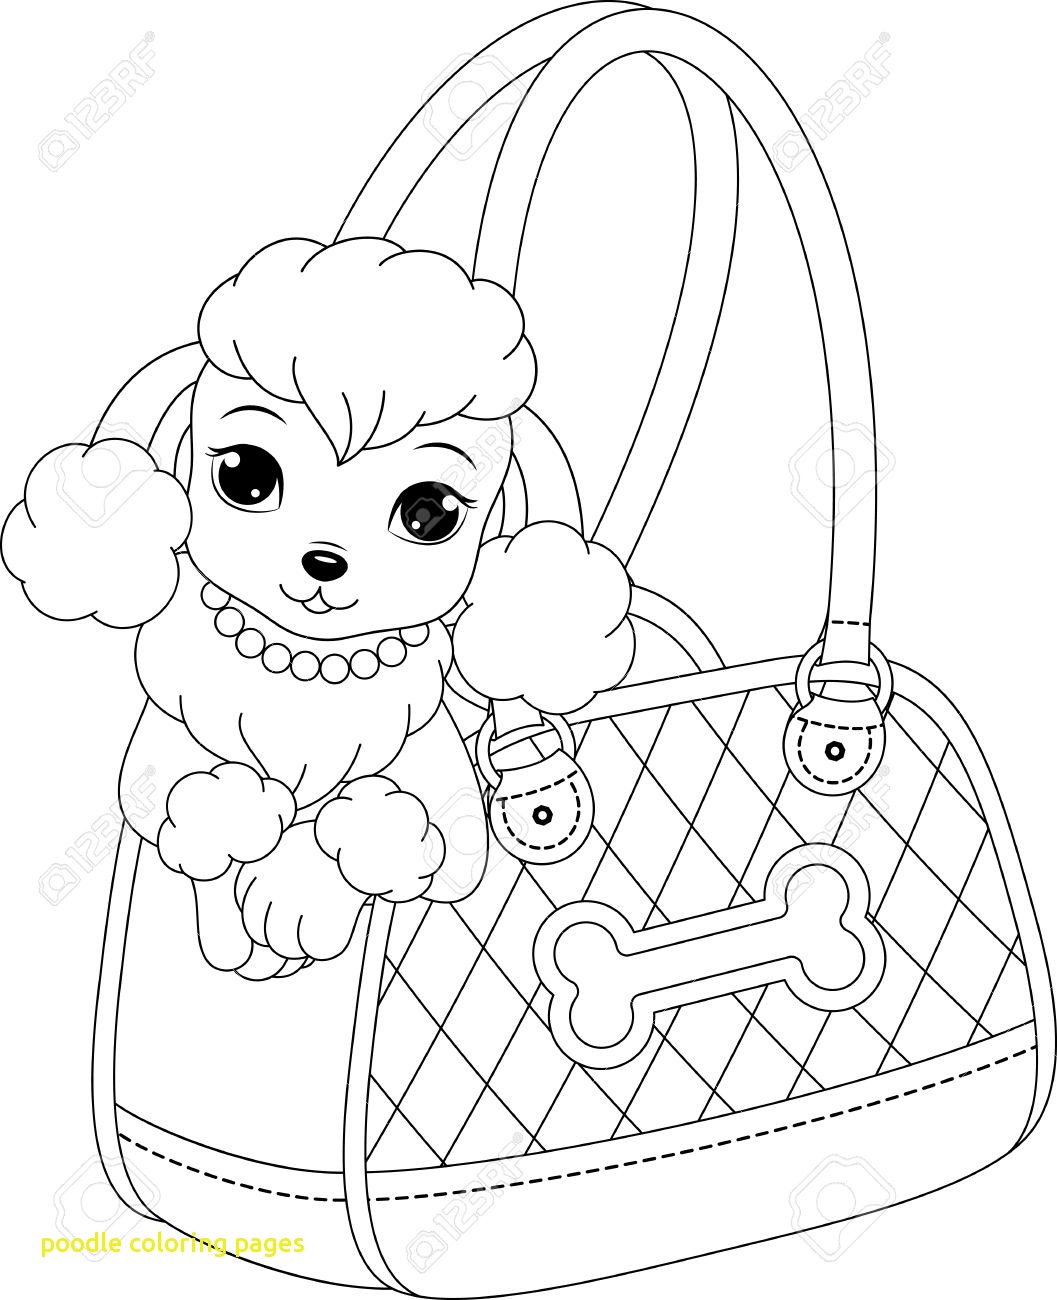 1057x1300 Poodle Coloring Pages With Realistic Poodle Coloring Pages Sketch